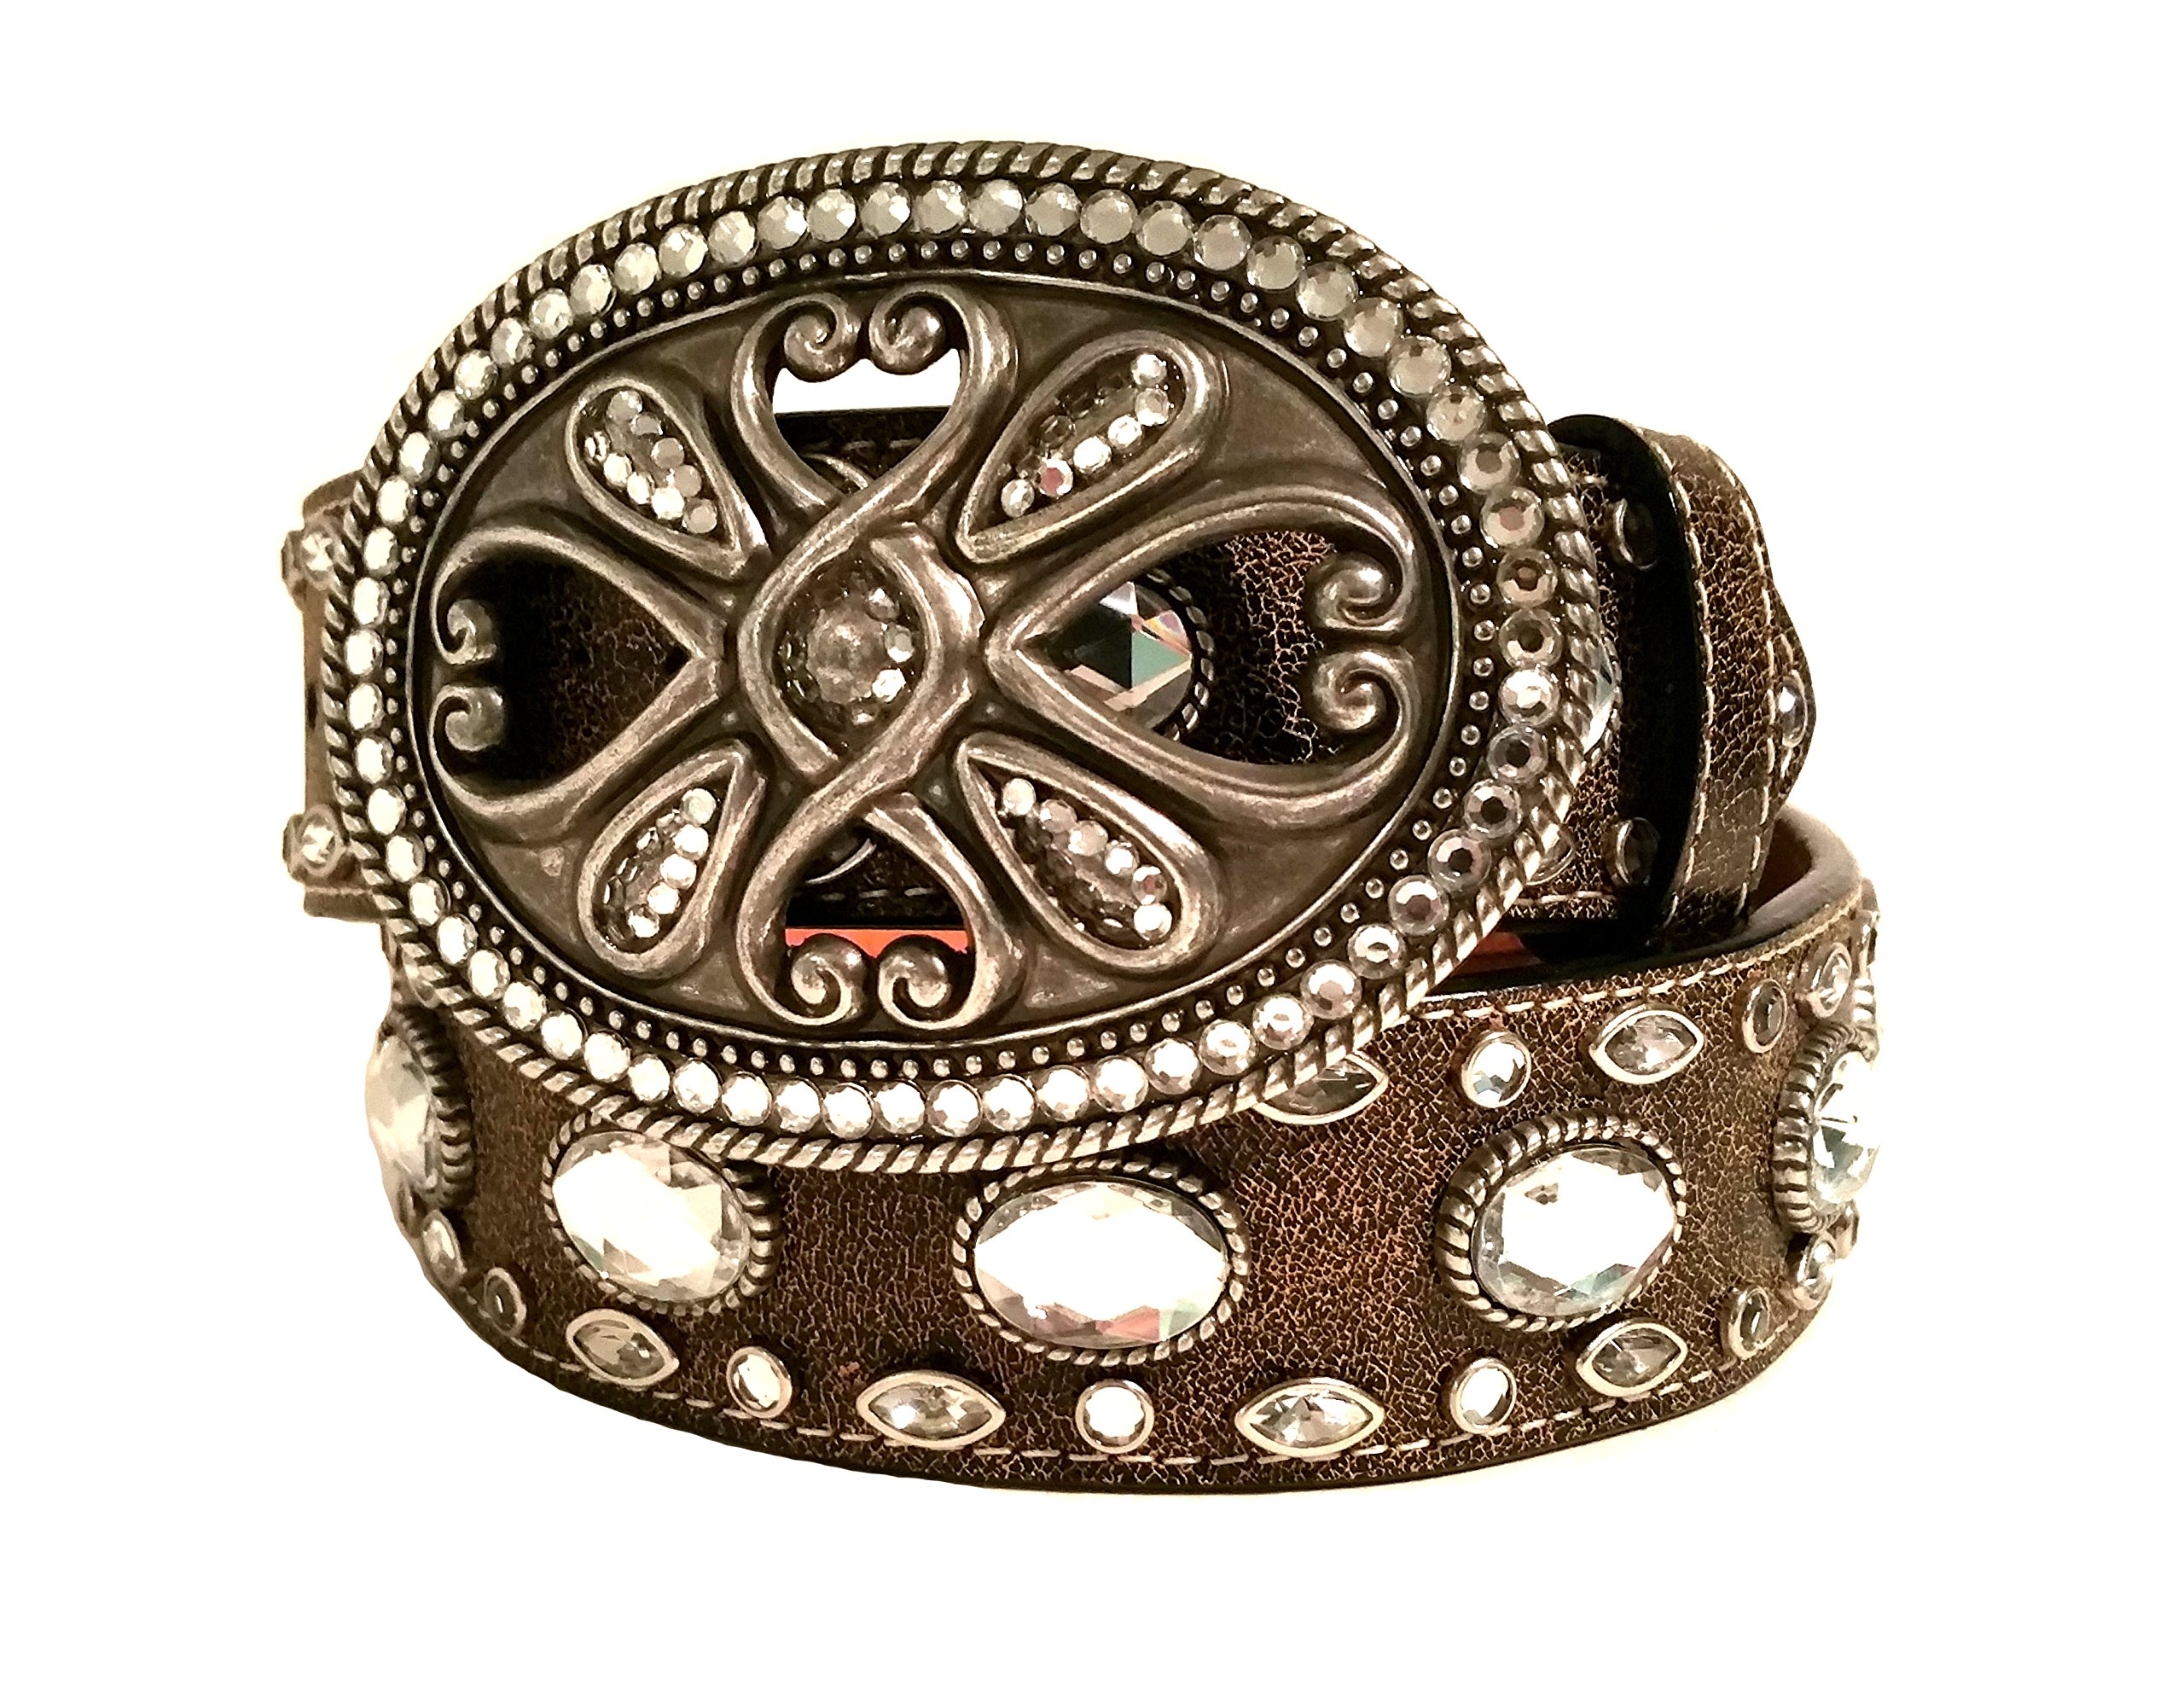 3D Belt Belt style 960 Brown with Clear Stones by 3D Belt Company